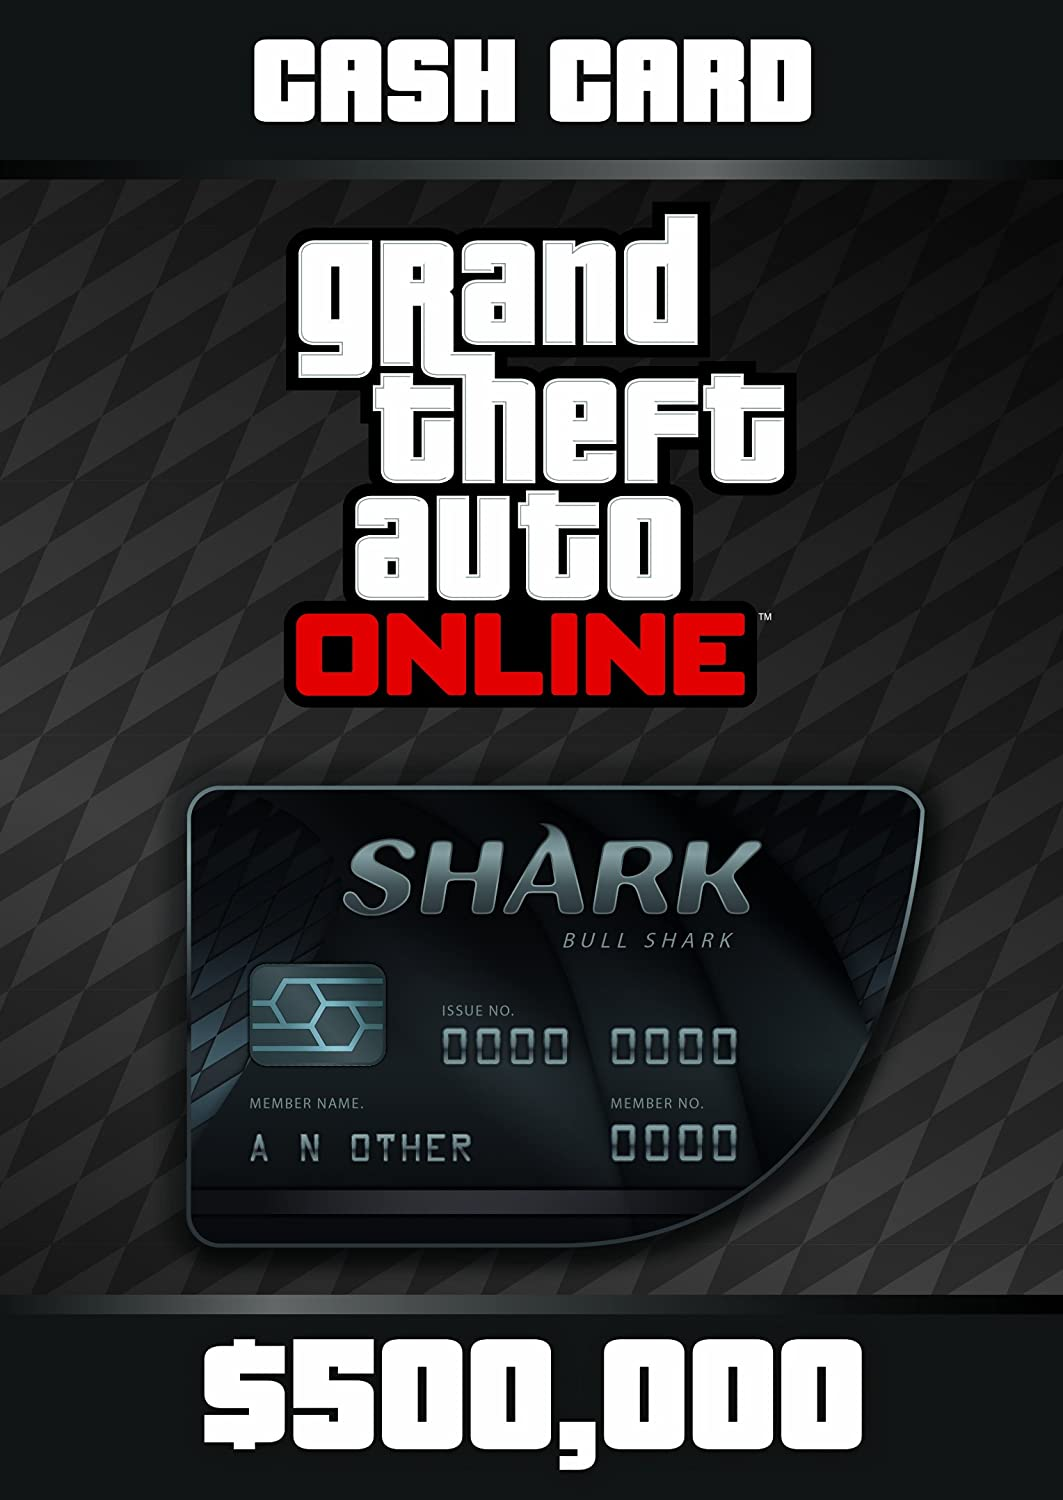 Amazon.com: Grand Theft Auto V: Bull Shark Cash Card - PS4 ...